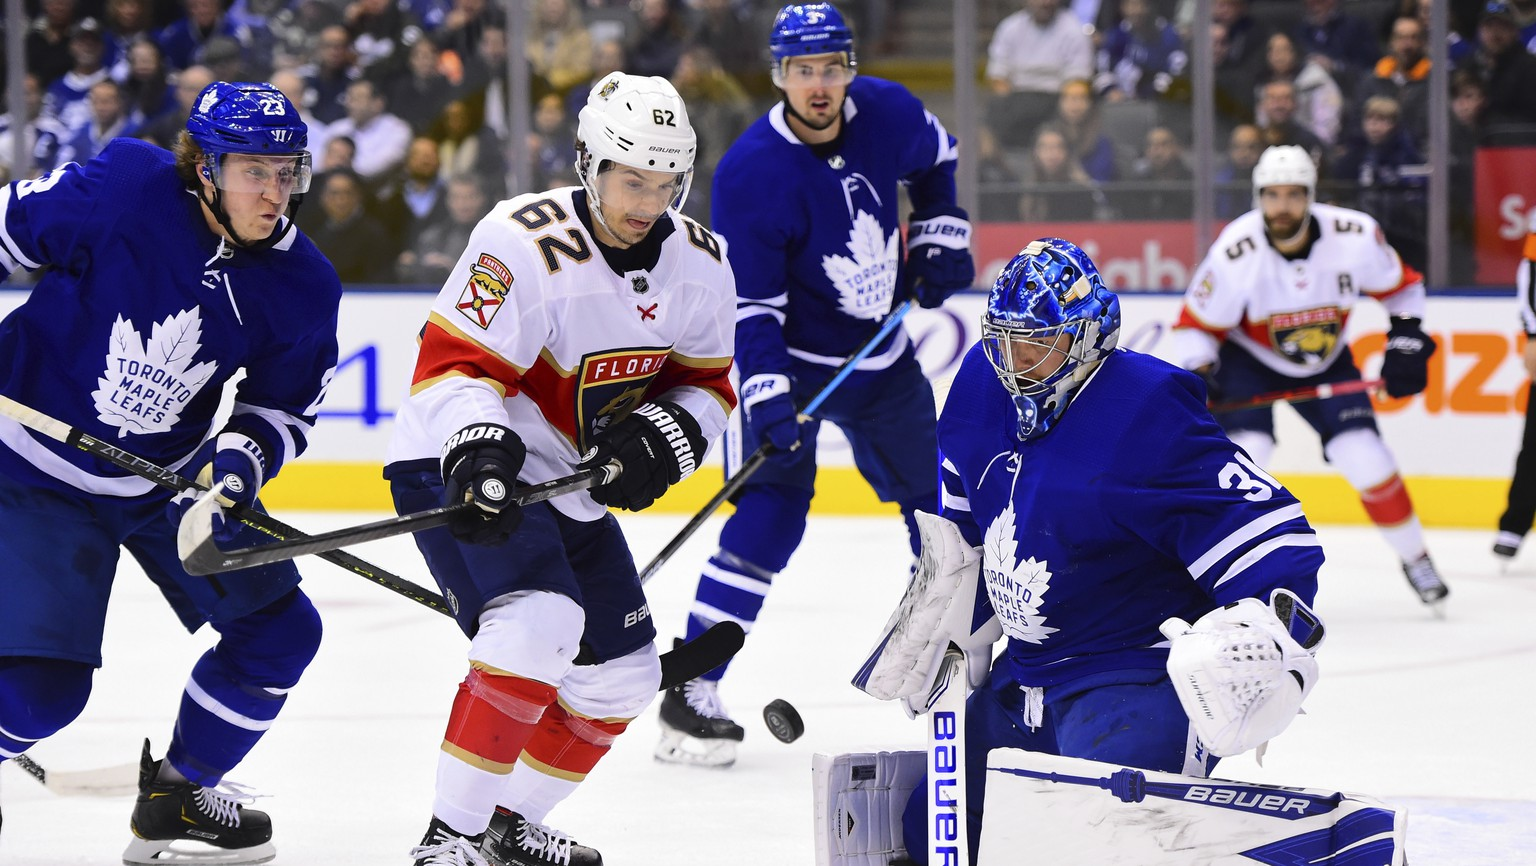 Florida Panthers center Denis Malgin (62) moves in on Toronto Maple Leafs goaltender Frederik Andersen (31) as Maple Leafs Travis Dermott (23) defends during the first period of an NHL hockey game, Monday, Feb. 3, 2020 in Toronto. (Frank Gunn/The Canadian Press via AP)